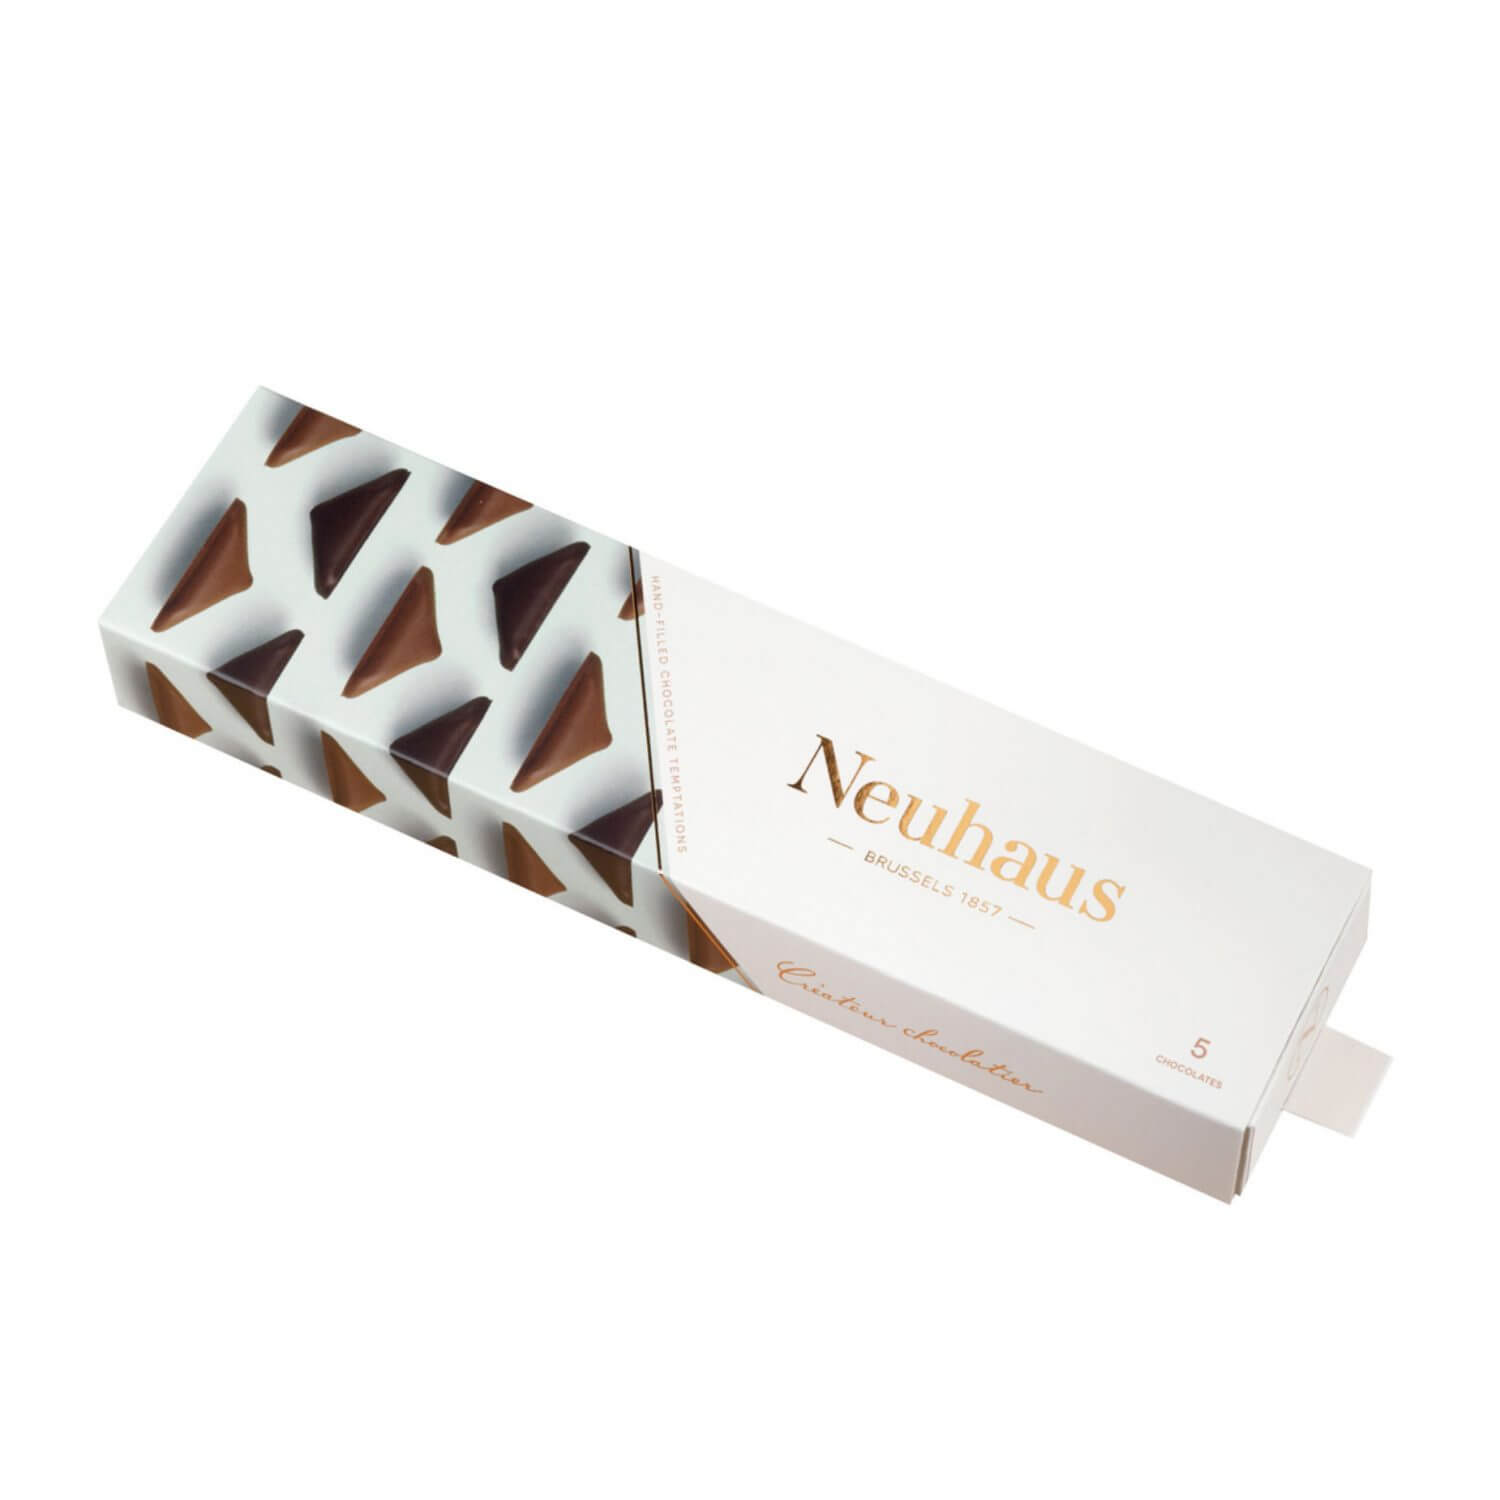 Neuhaus Impulse irresistibles